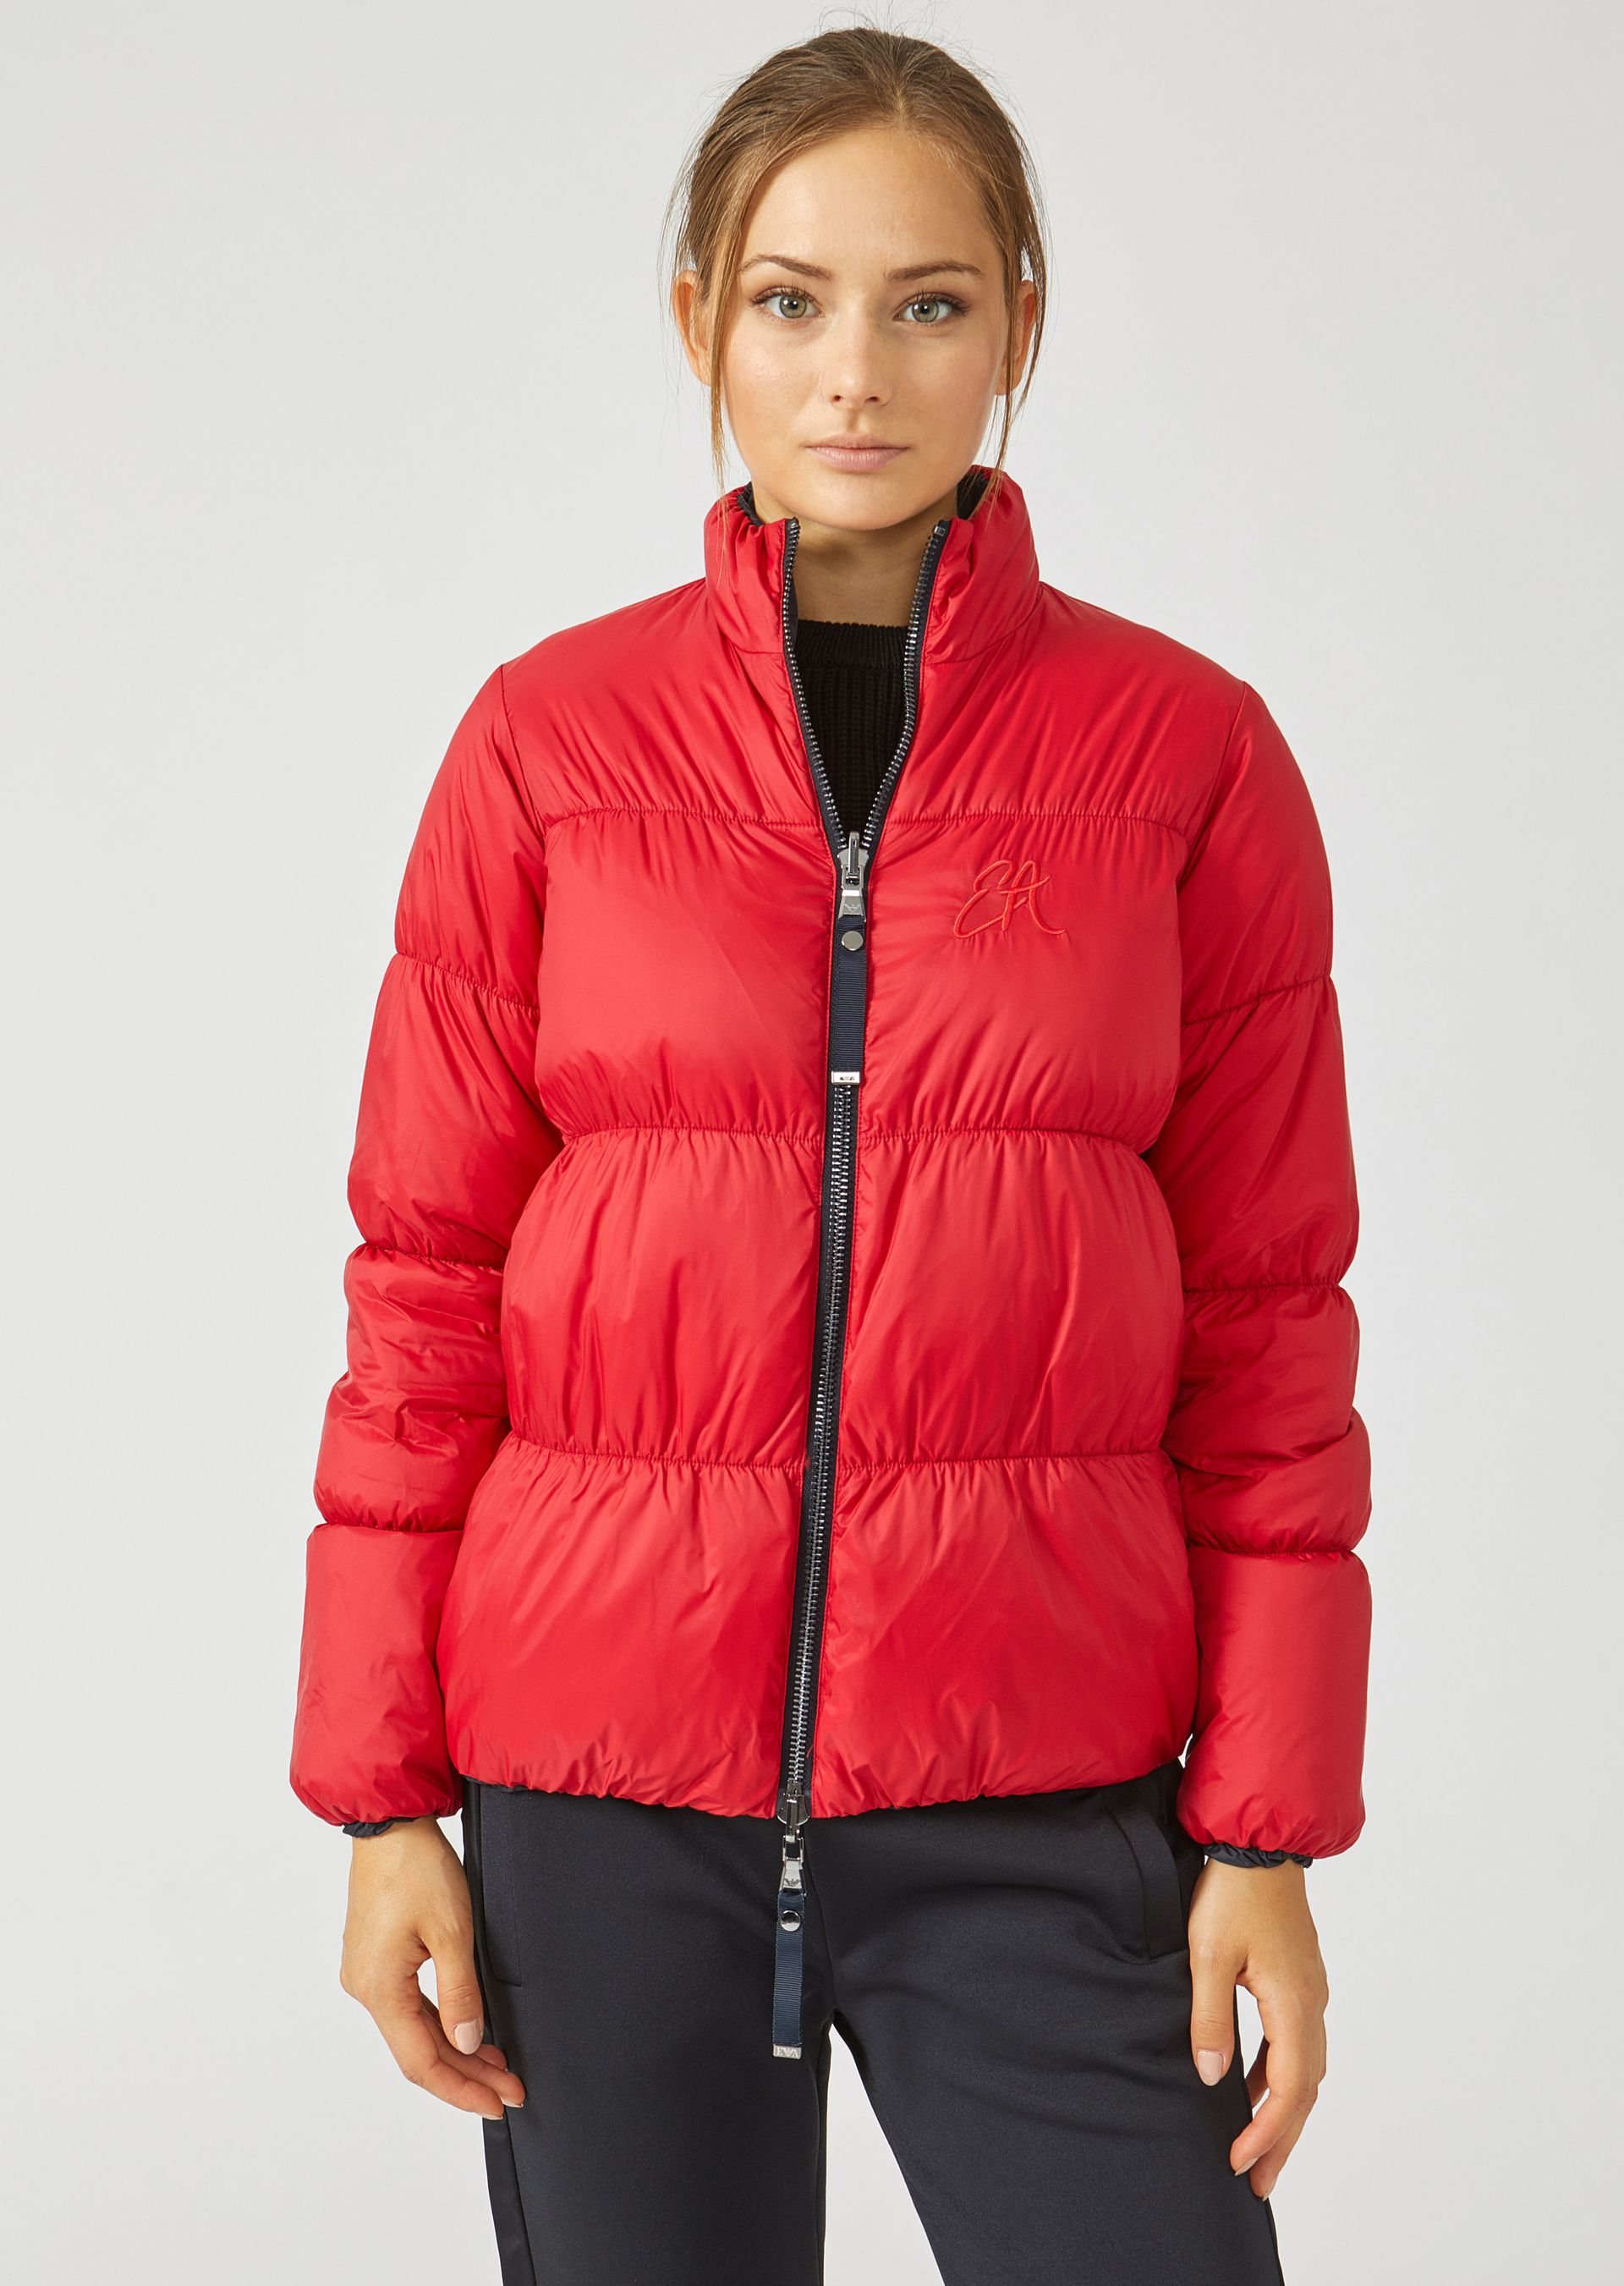 Down Jackets - Item 41843982, Red from ARMANI.COM